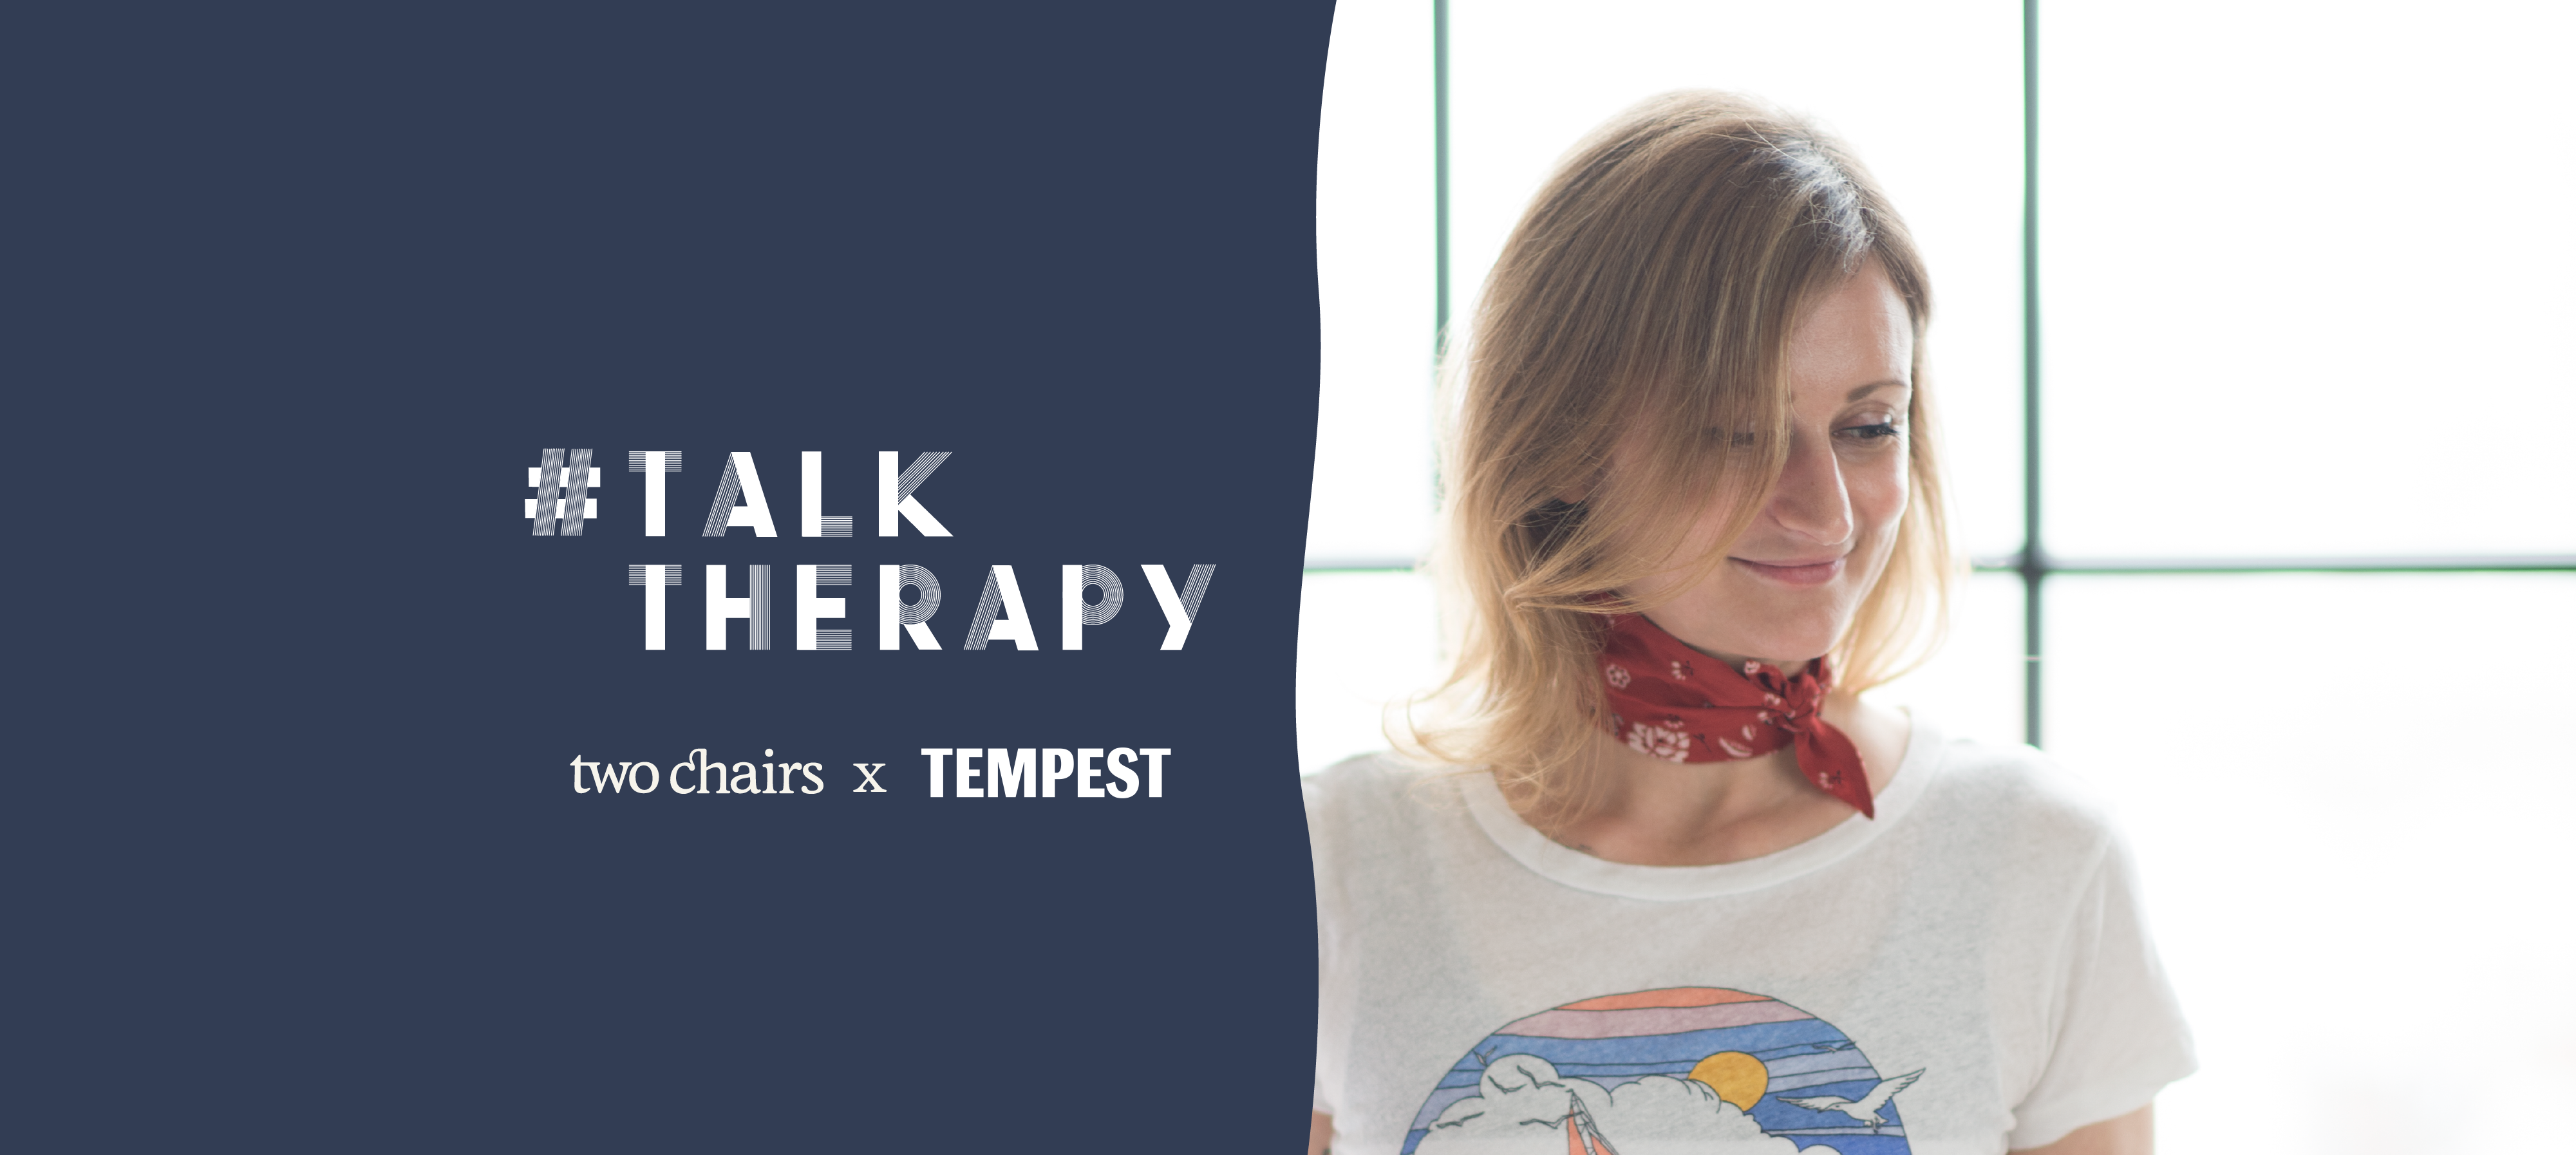 #TalkTherapy with Holly Whitaker, CEO and Founder of Tempest